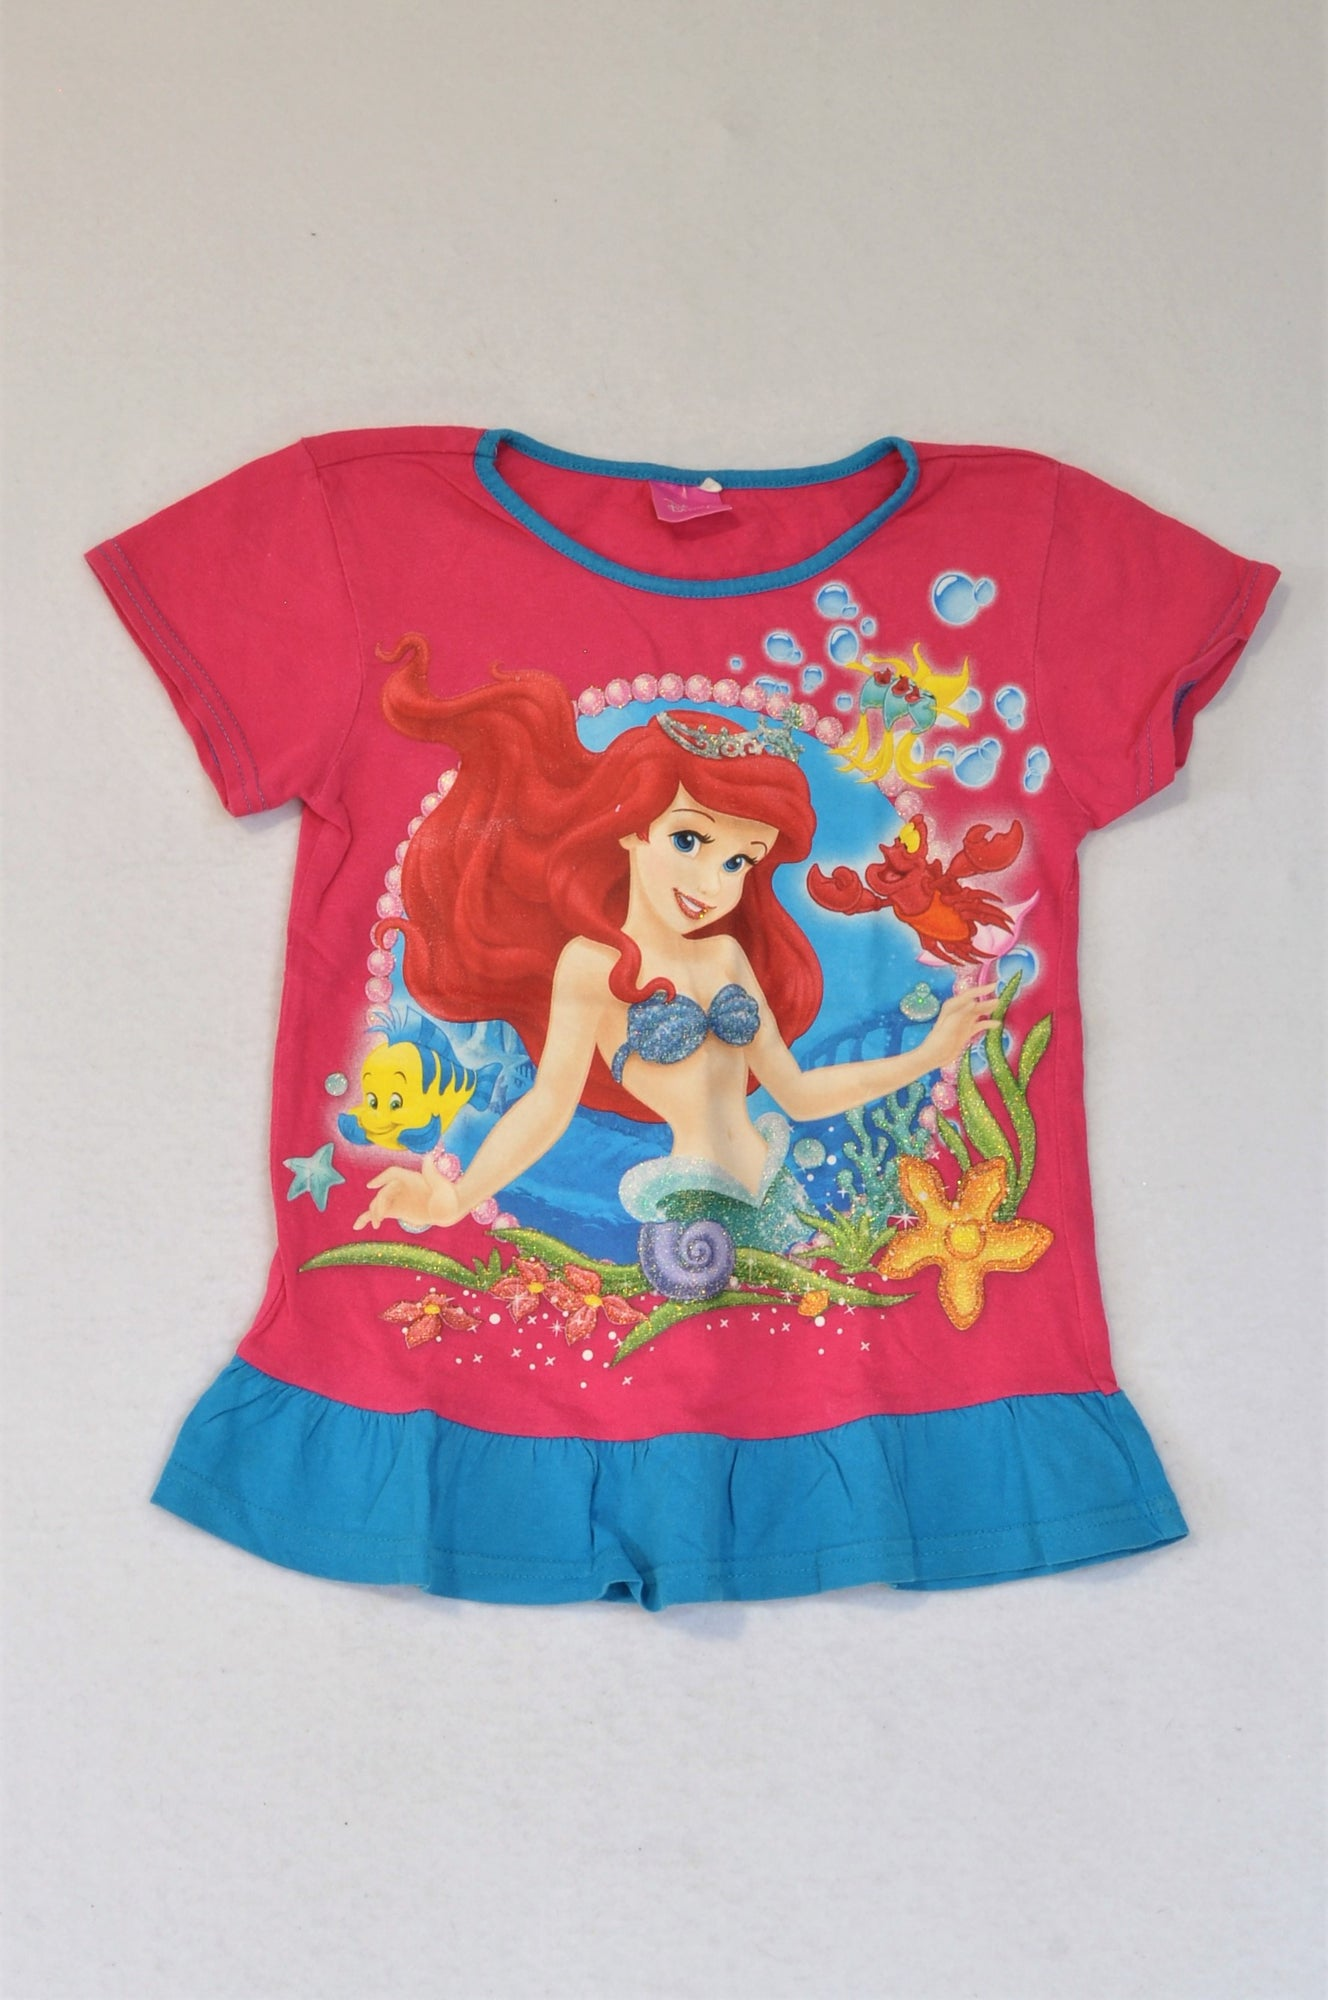 Disney Pink Little Mermaid T-shirt Girls 5-6 years